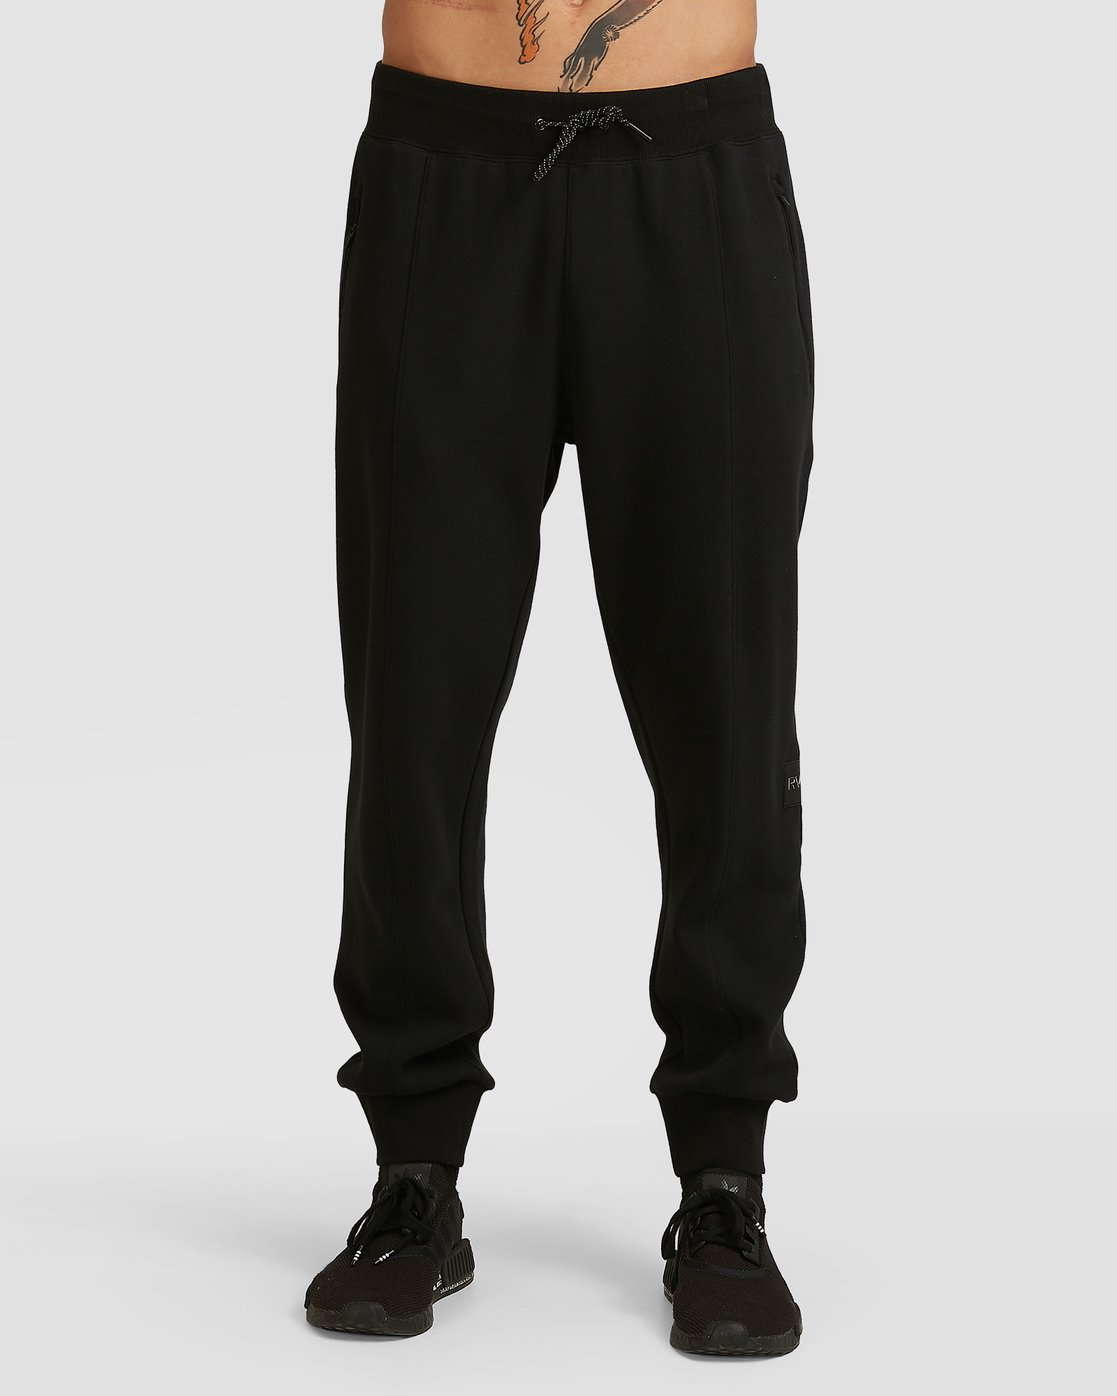 4 SPORT TECH SWEATPANT Black R305271 RVCA